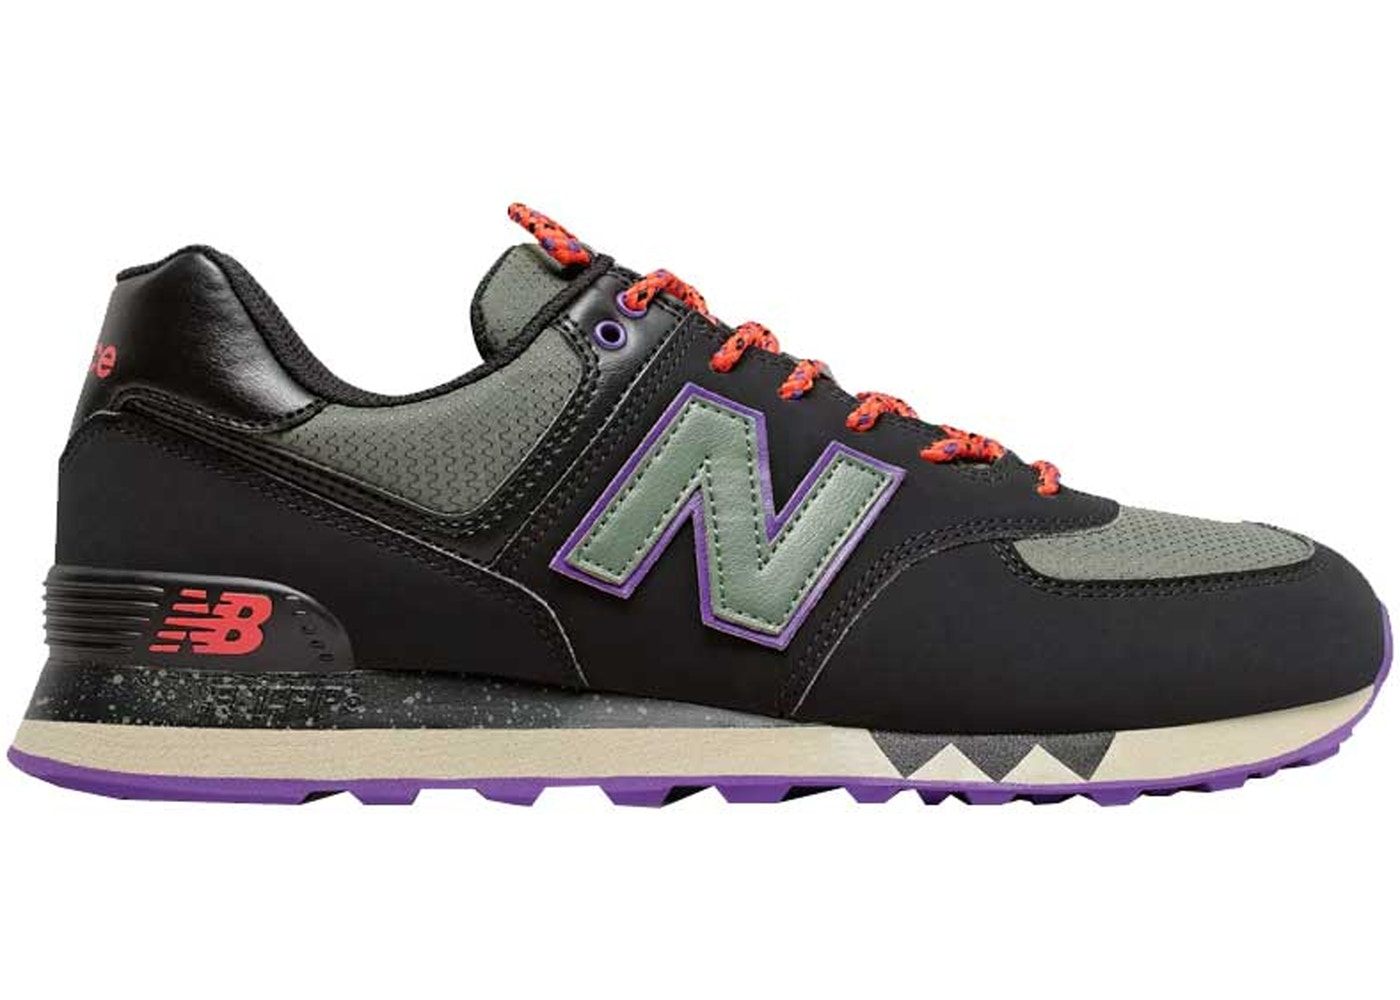 New Balance 574 Outdoor Pack Black - ML574NFQ